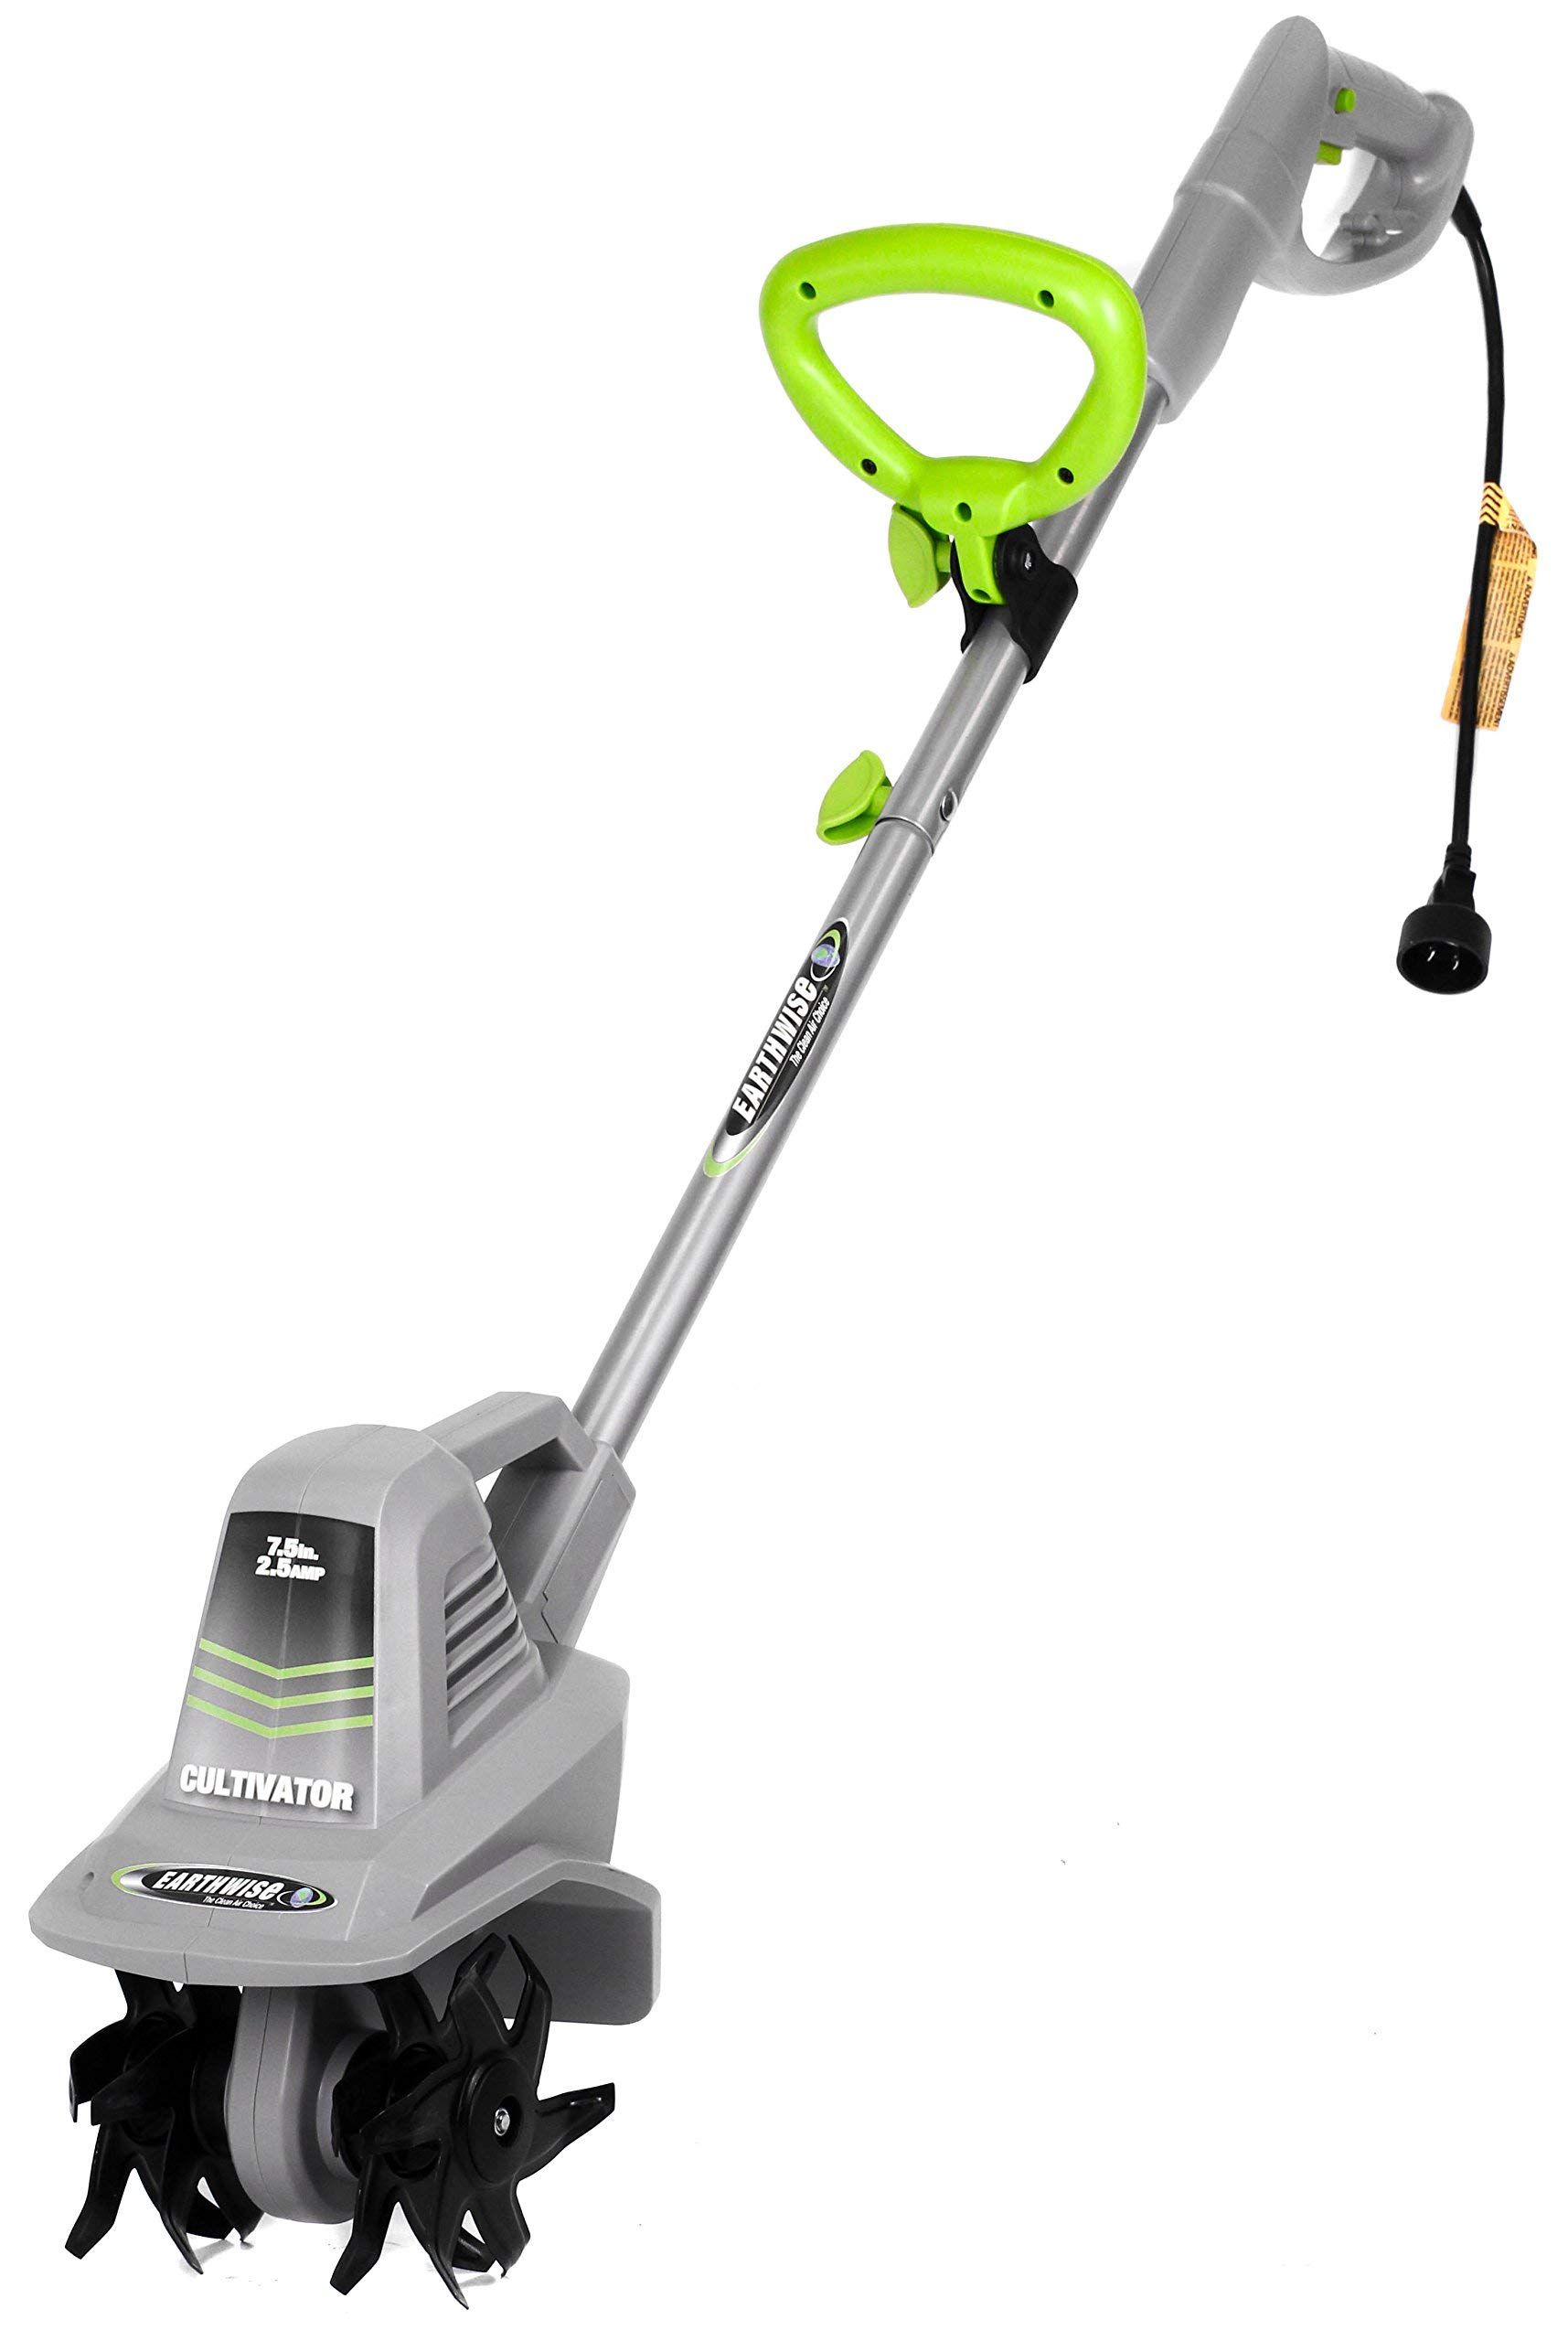 Earthwise TC70025 7.5-Inch 2.5-Amp Corded Electric Tiller/Cultivator (Renewed)